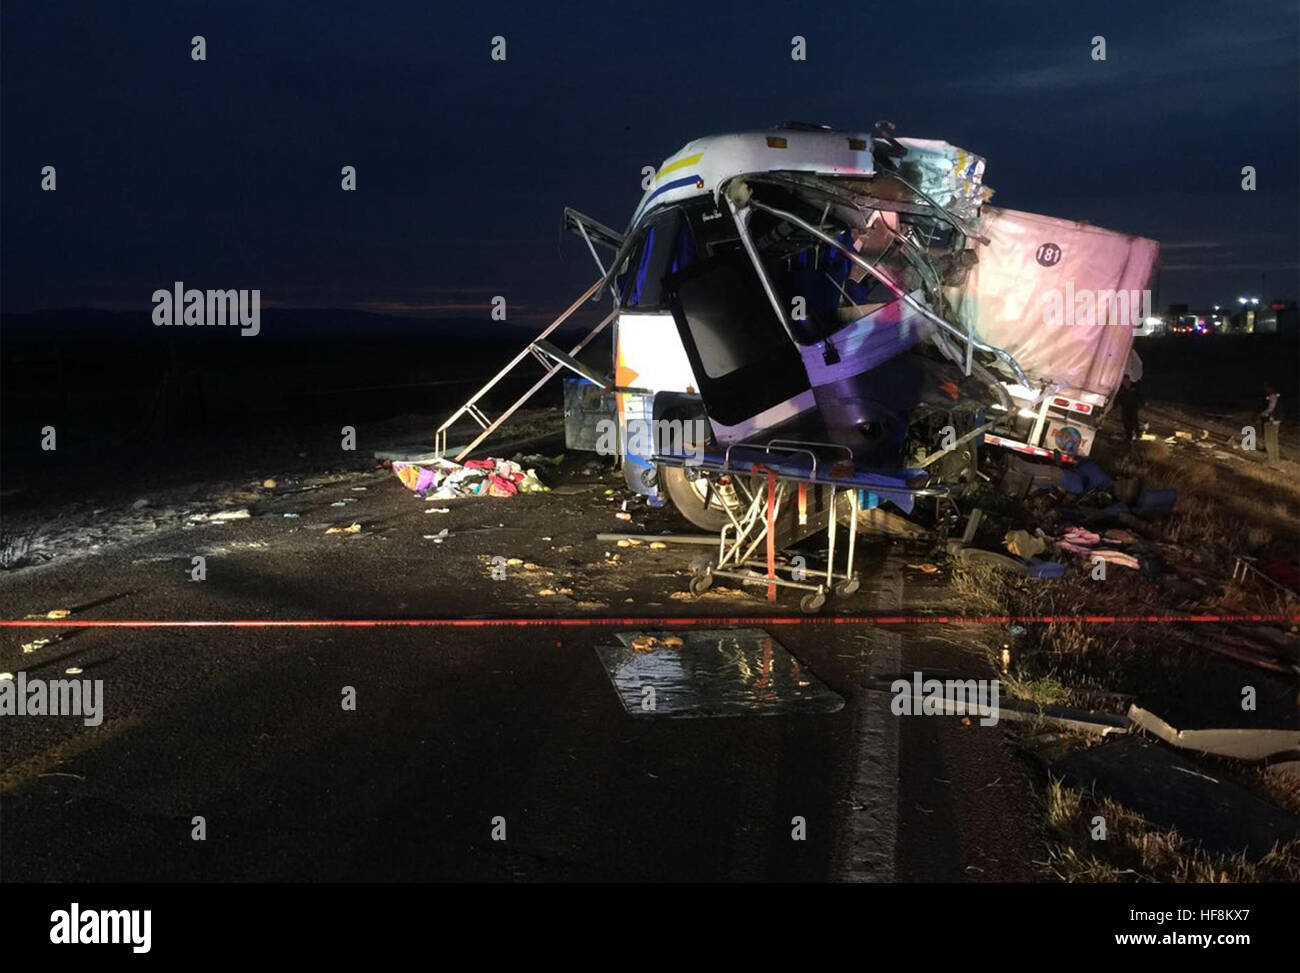 Chihuahua, Mexico. 29th Dec, 2016. Image provided by the Mexican Federal Police shows the collision site of a bus Stock Photo